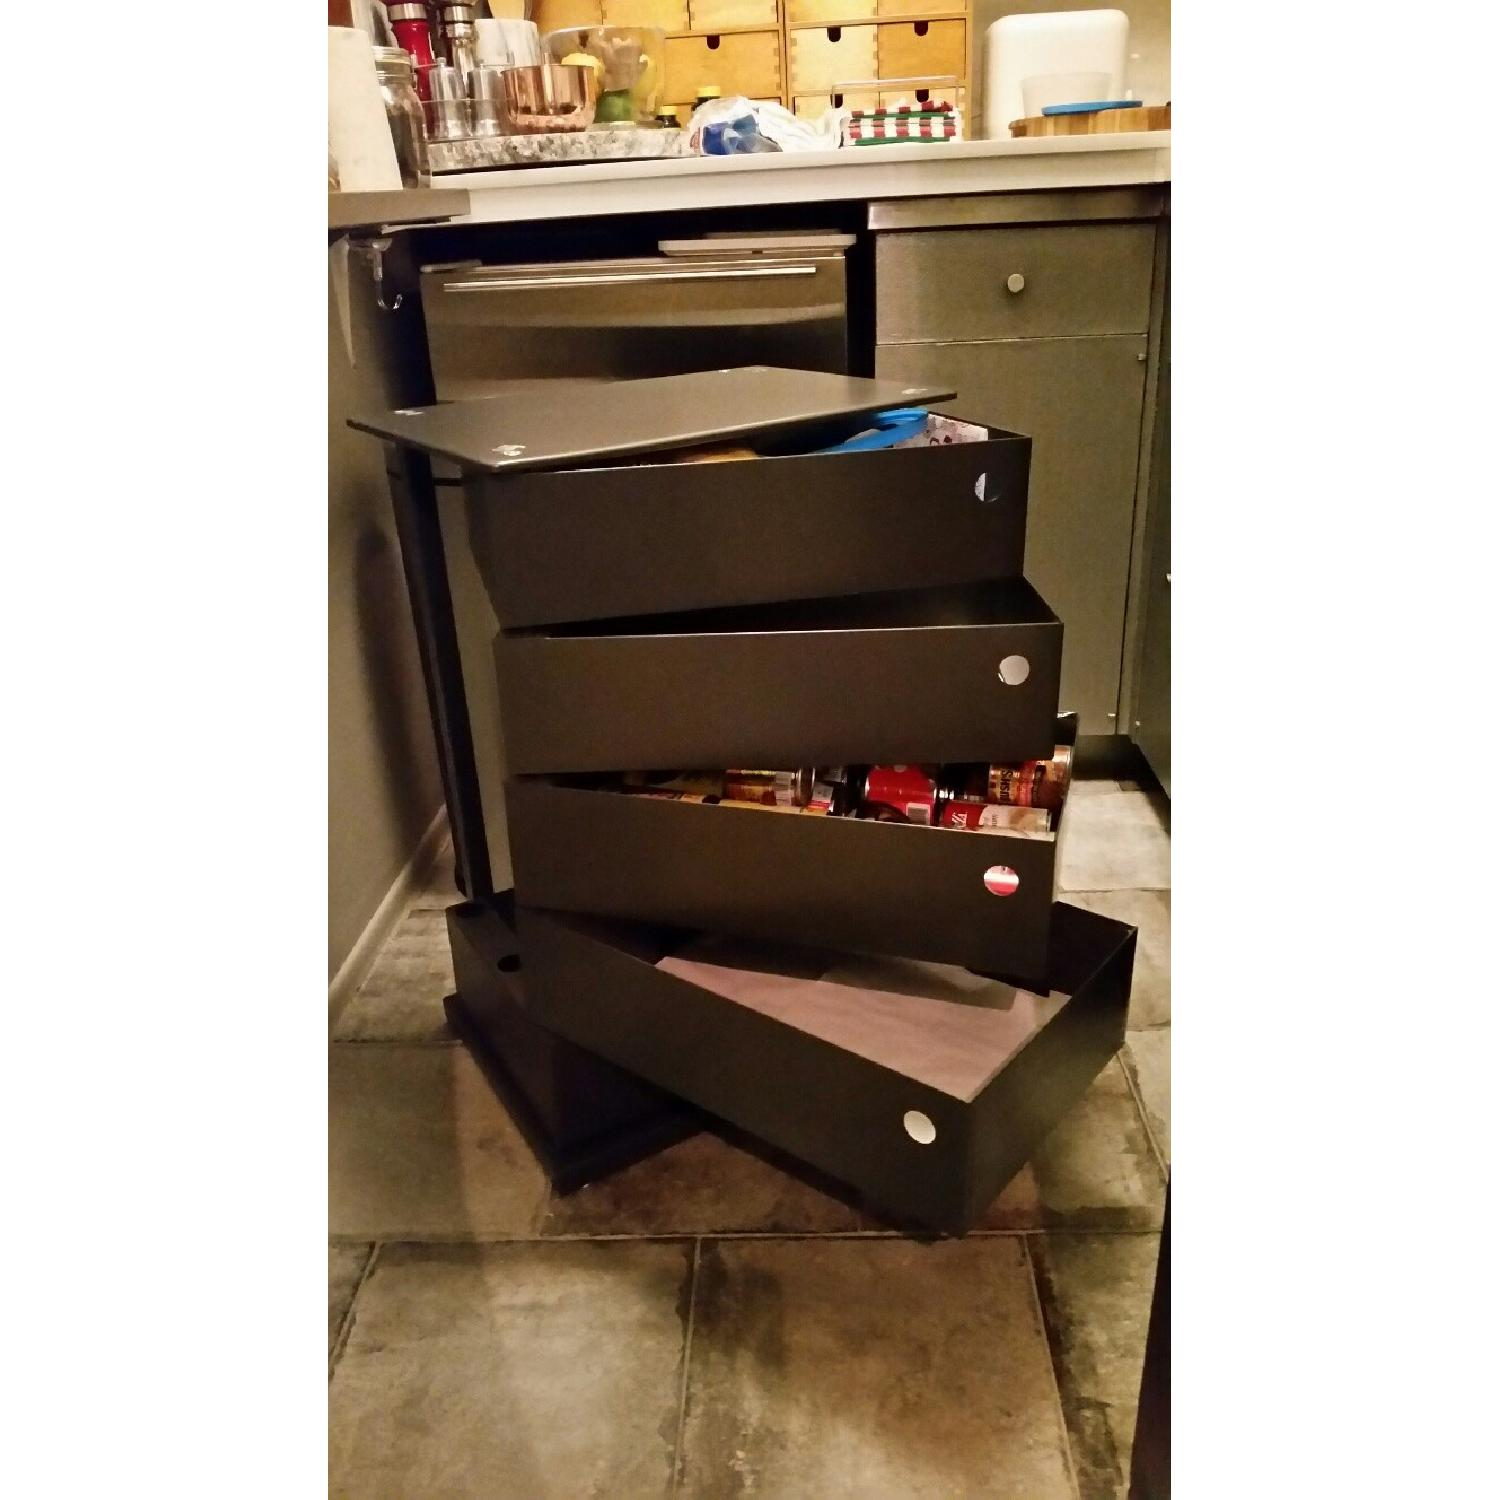 Container Store 5 Drawer Storage Tower - image-3